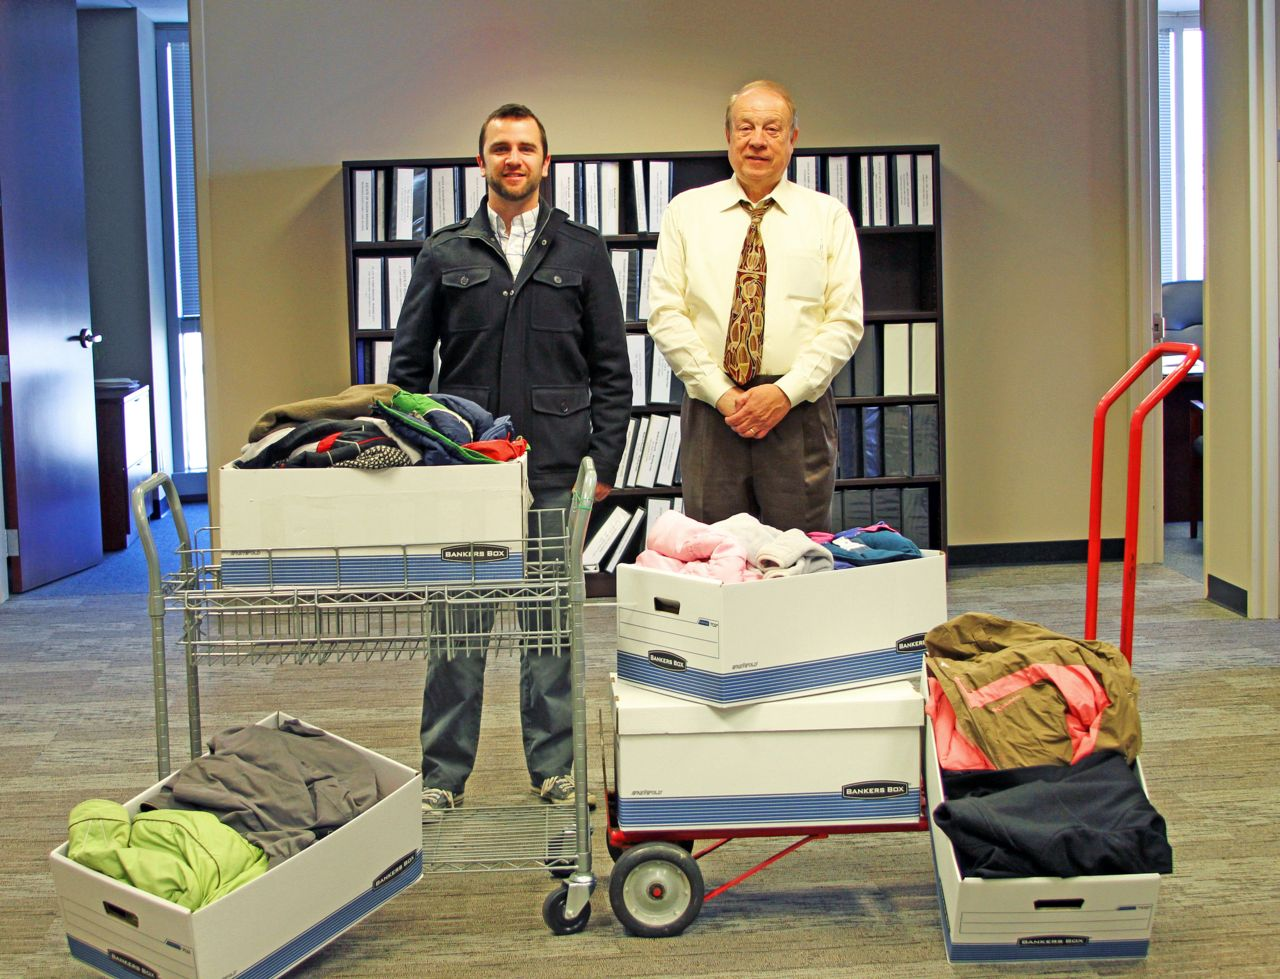 Attorney Michael Hupy and employee with boxes of clothes to share with the community